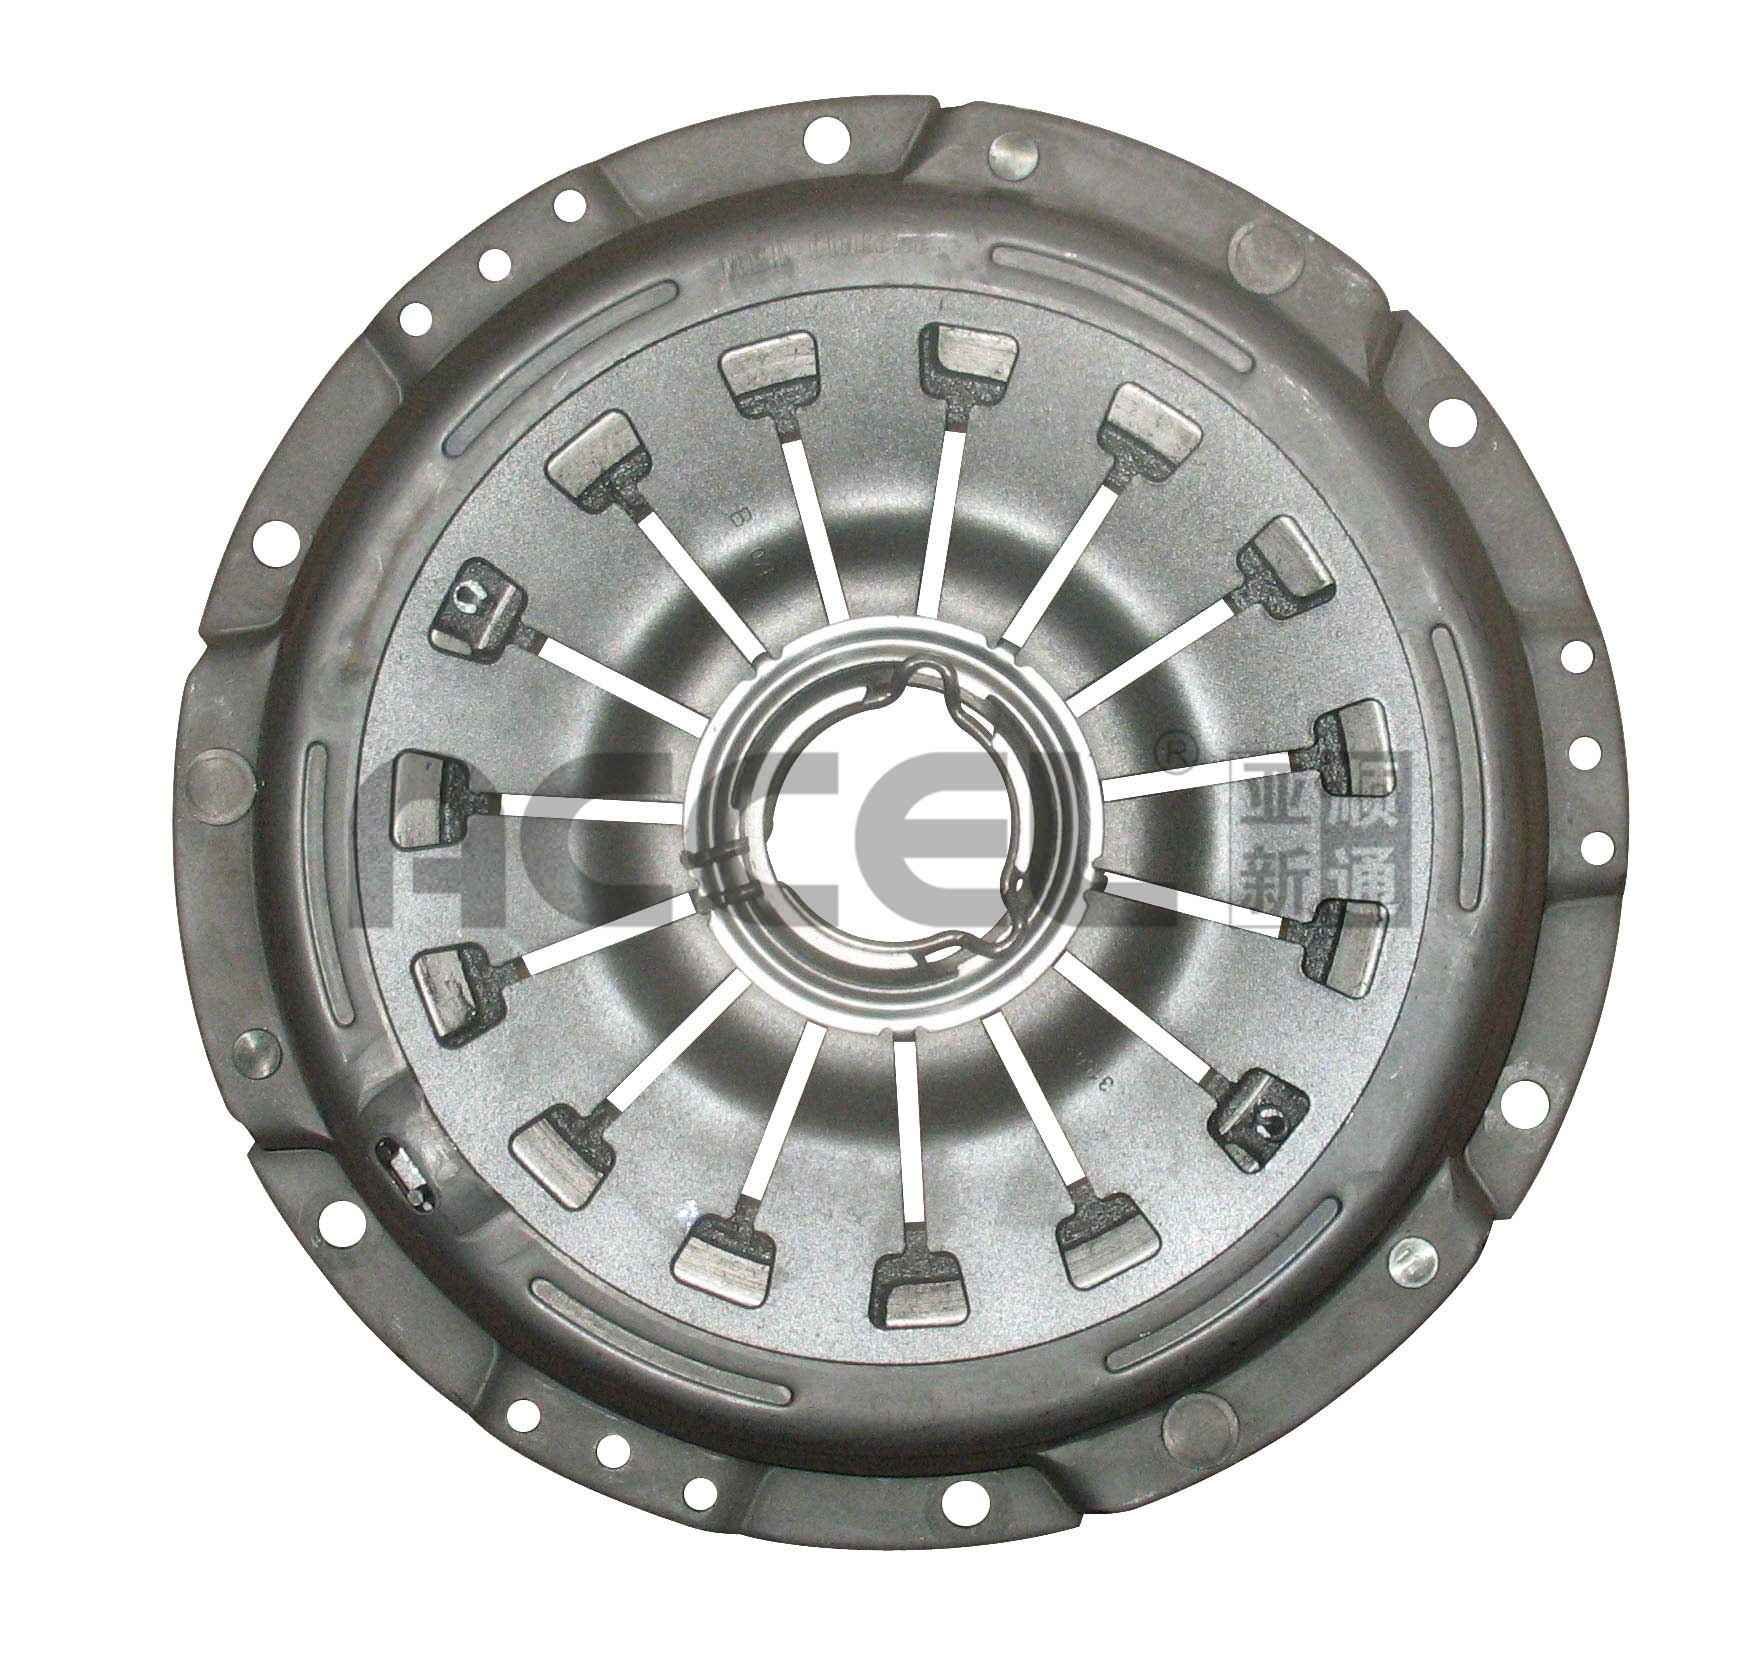 Clutch Cover/OE:7684752/236*155*270/STC-071/OTHERS/LY315